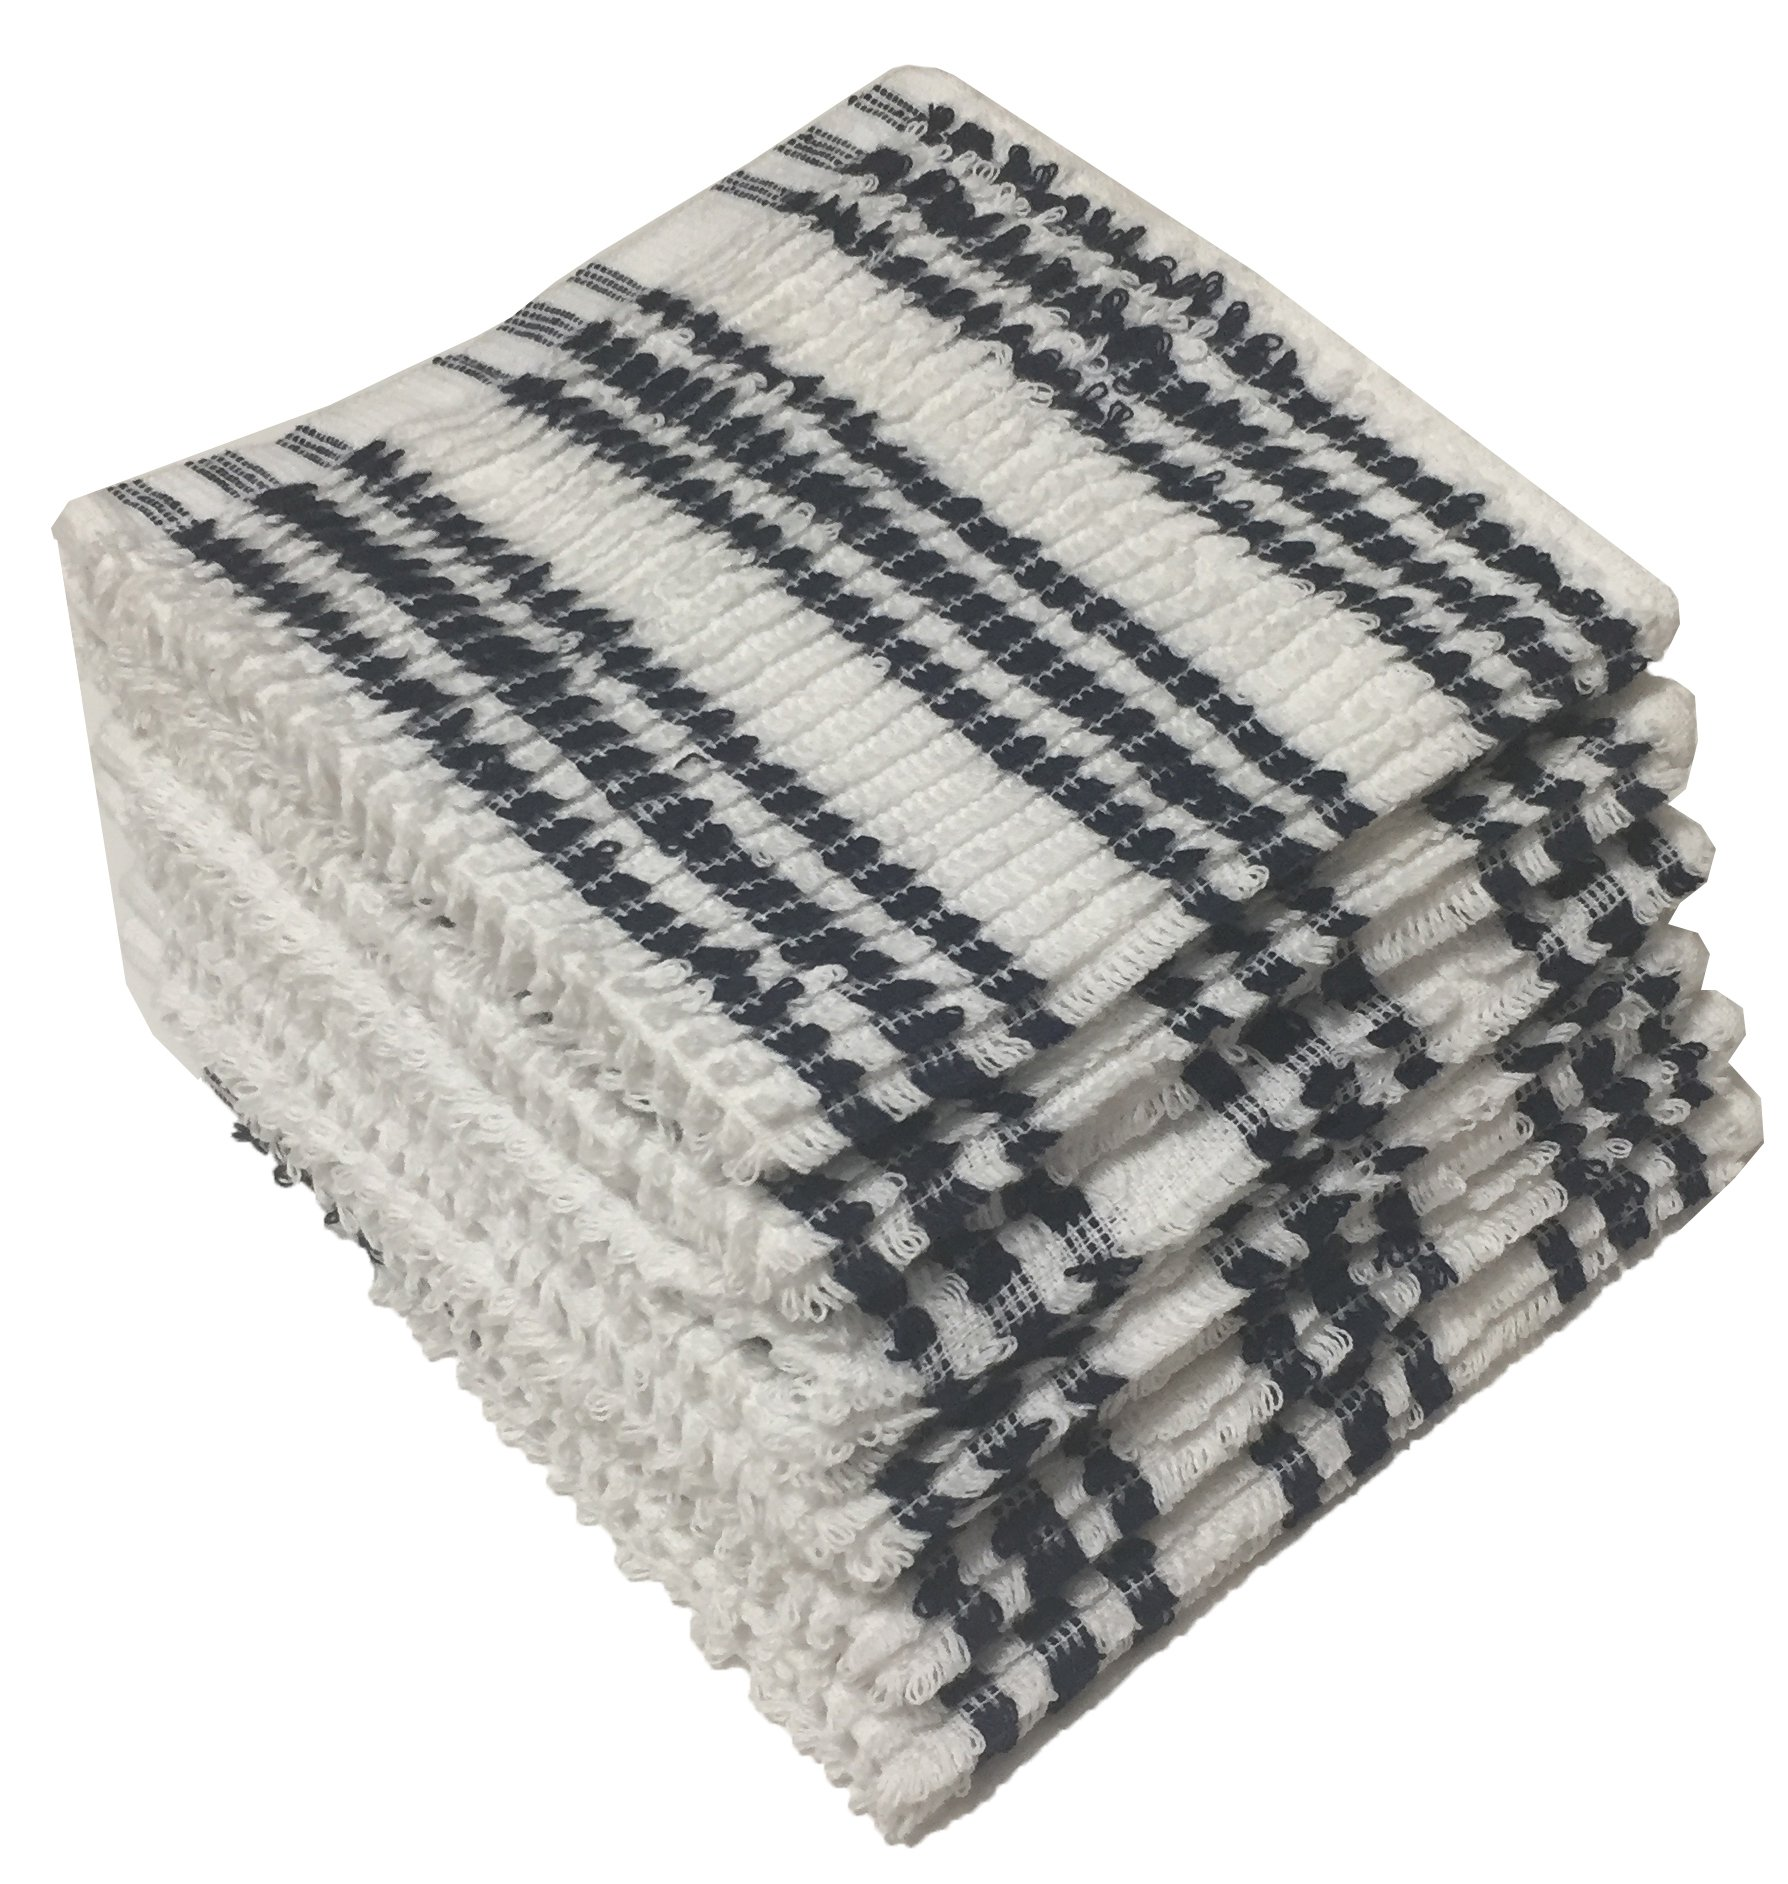 100% Cotton Dish cloths for Kitchen, Size: 13 x 13 inches for Maximum Softness and highly Absorbent Kitchen dishcloths, Machine Washable. (12, White with Blue Stripe)